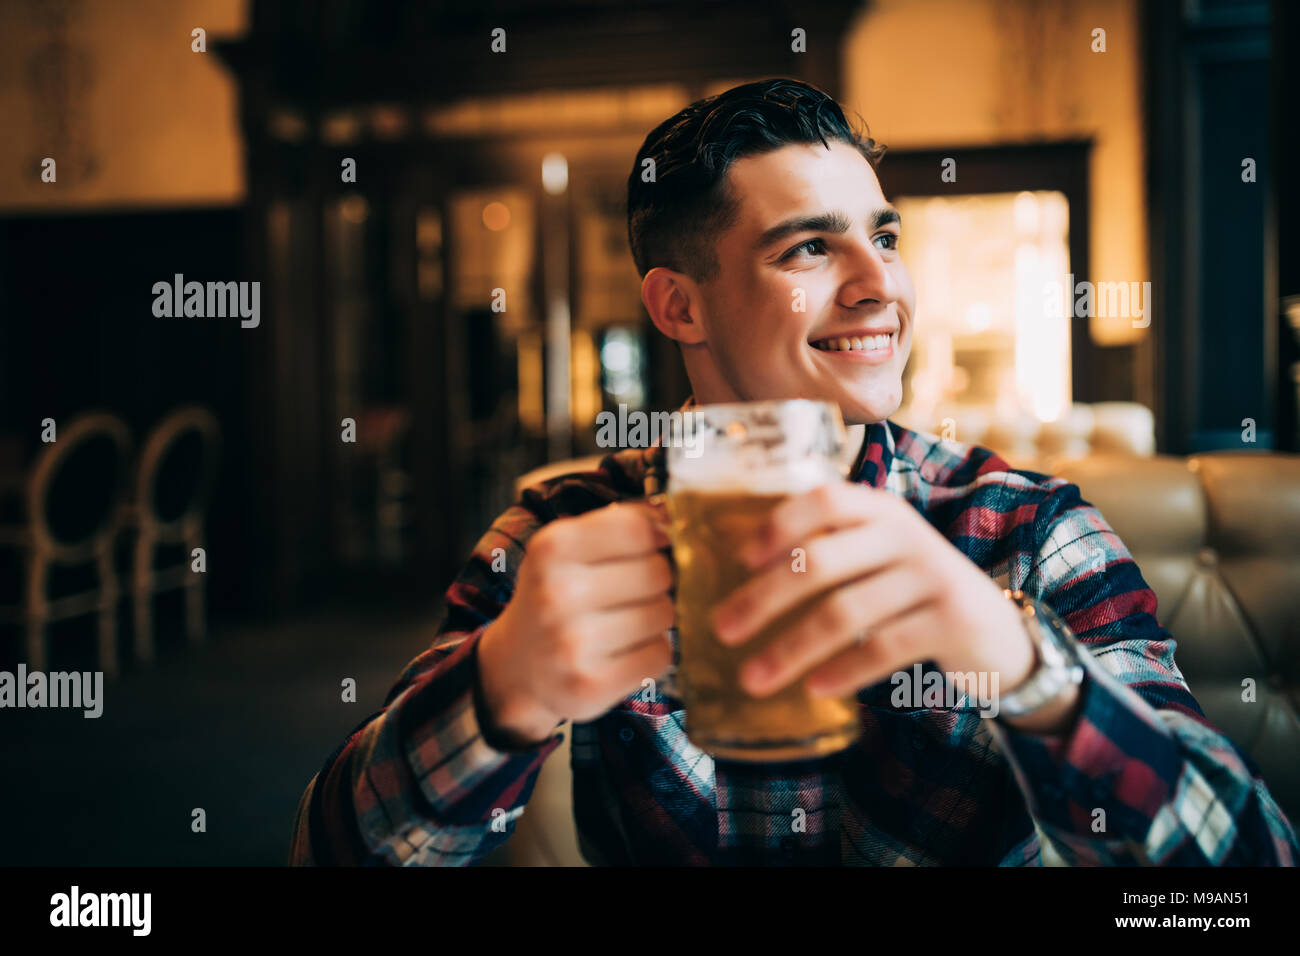 A young man with a beer in a bar - Stock Image